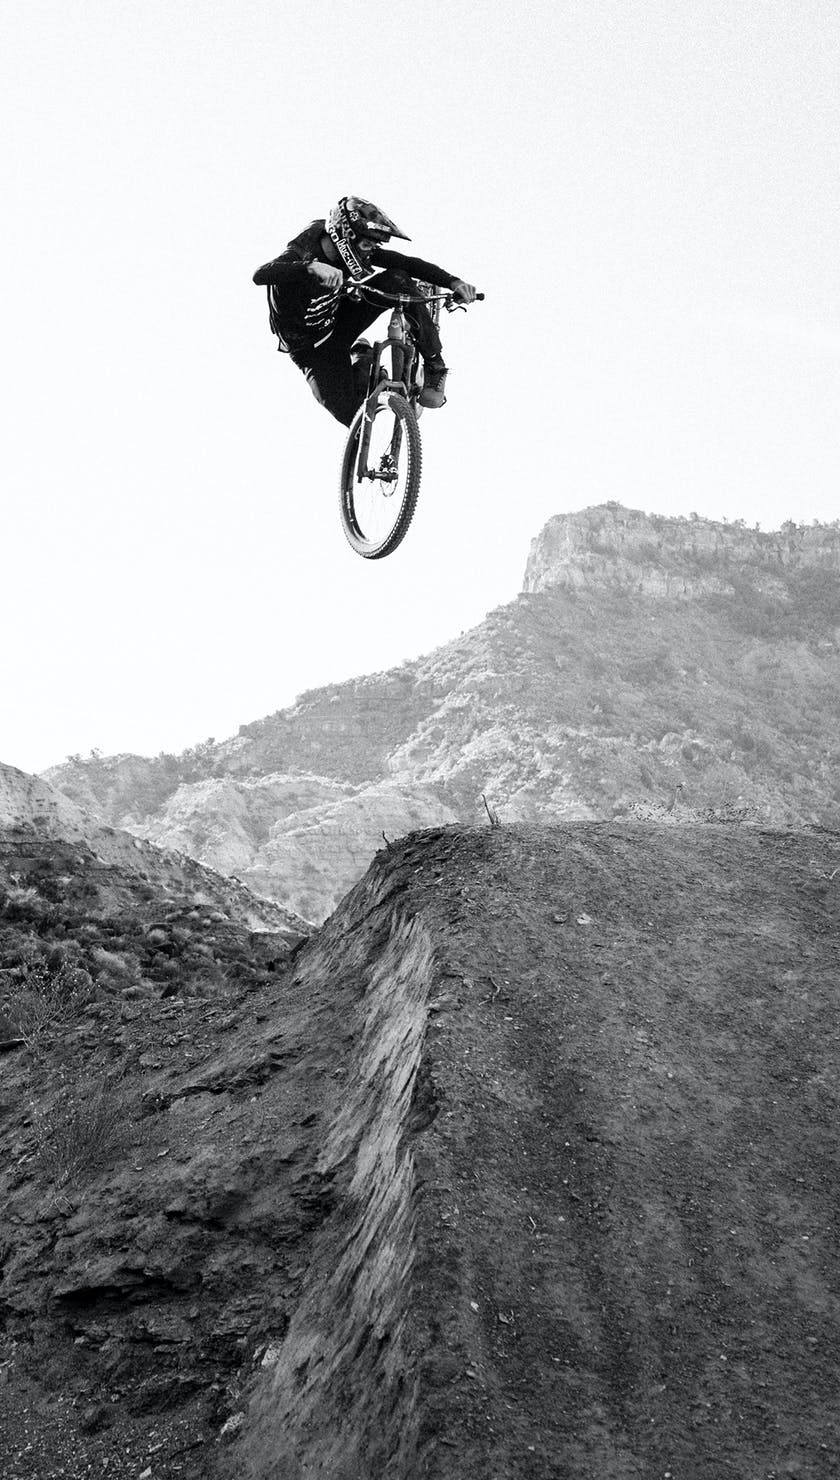 Reed Boggs From Then Till Now - Style B&W